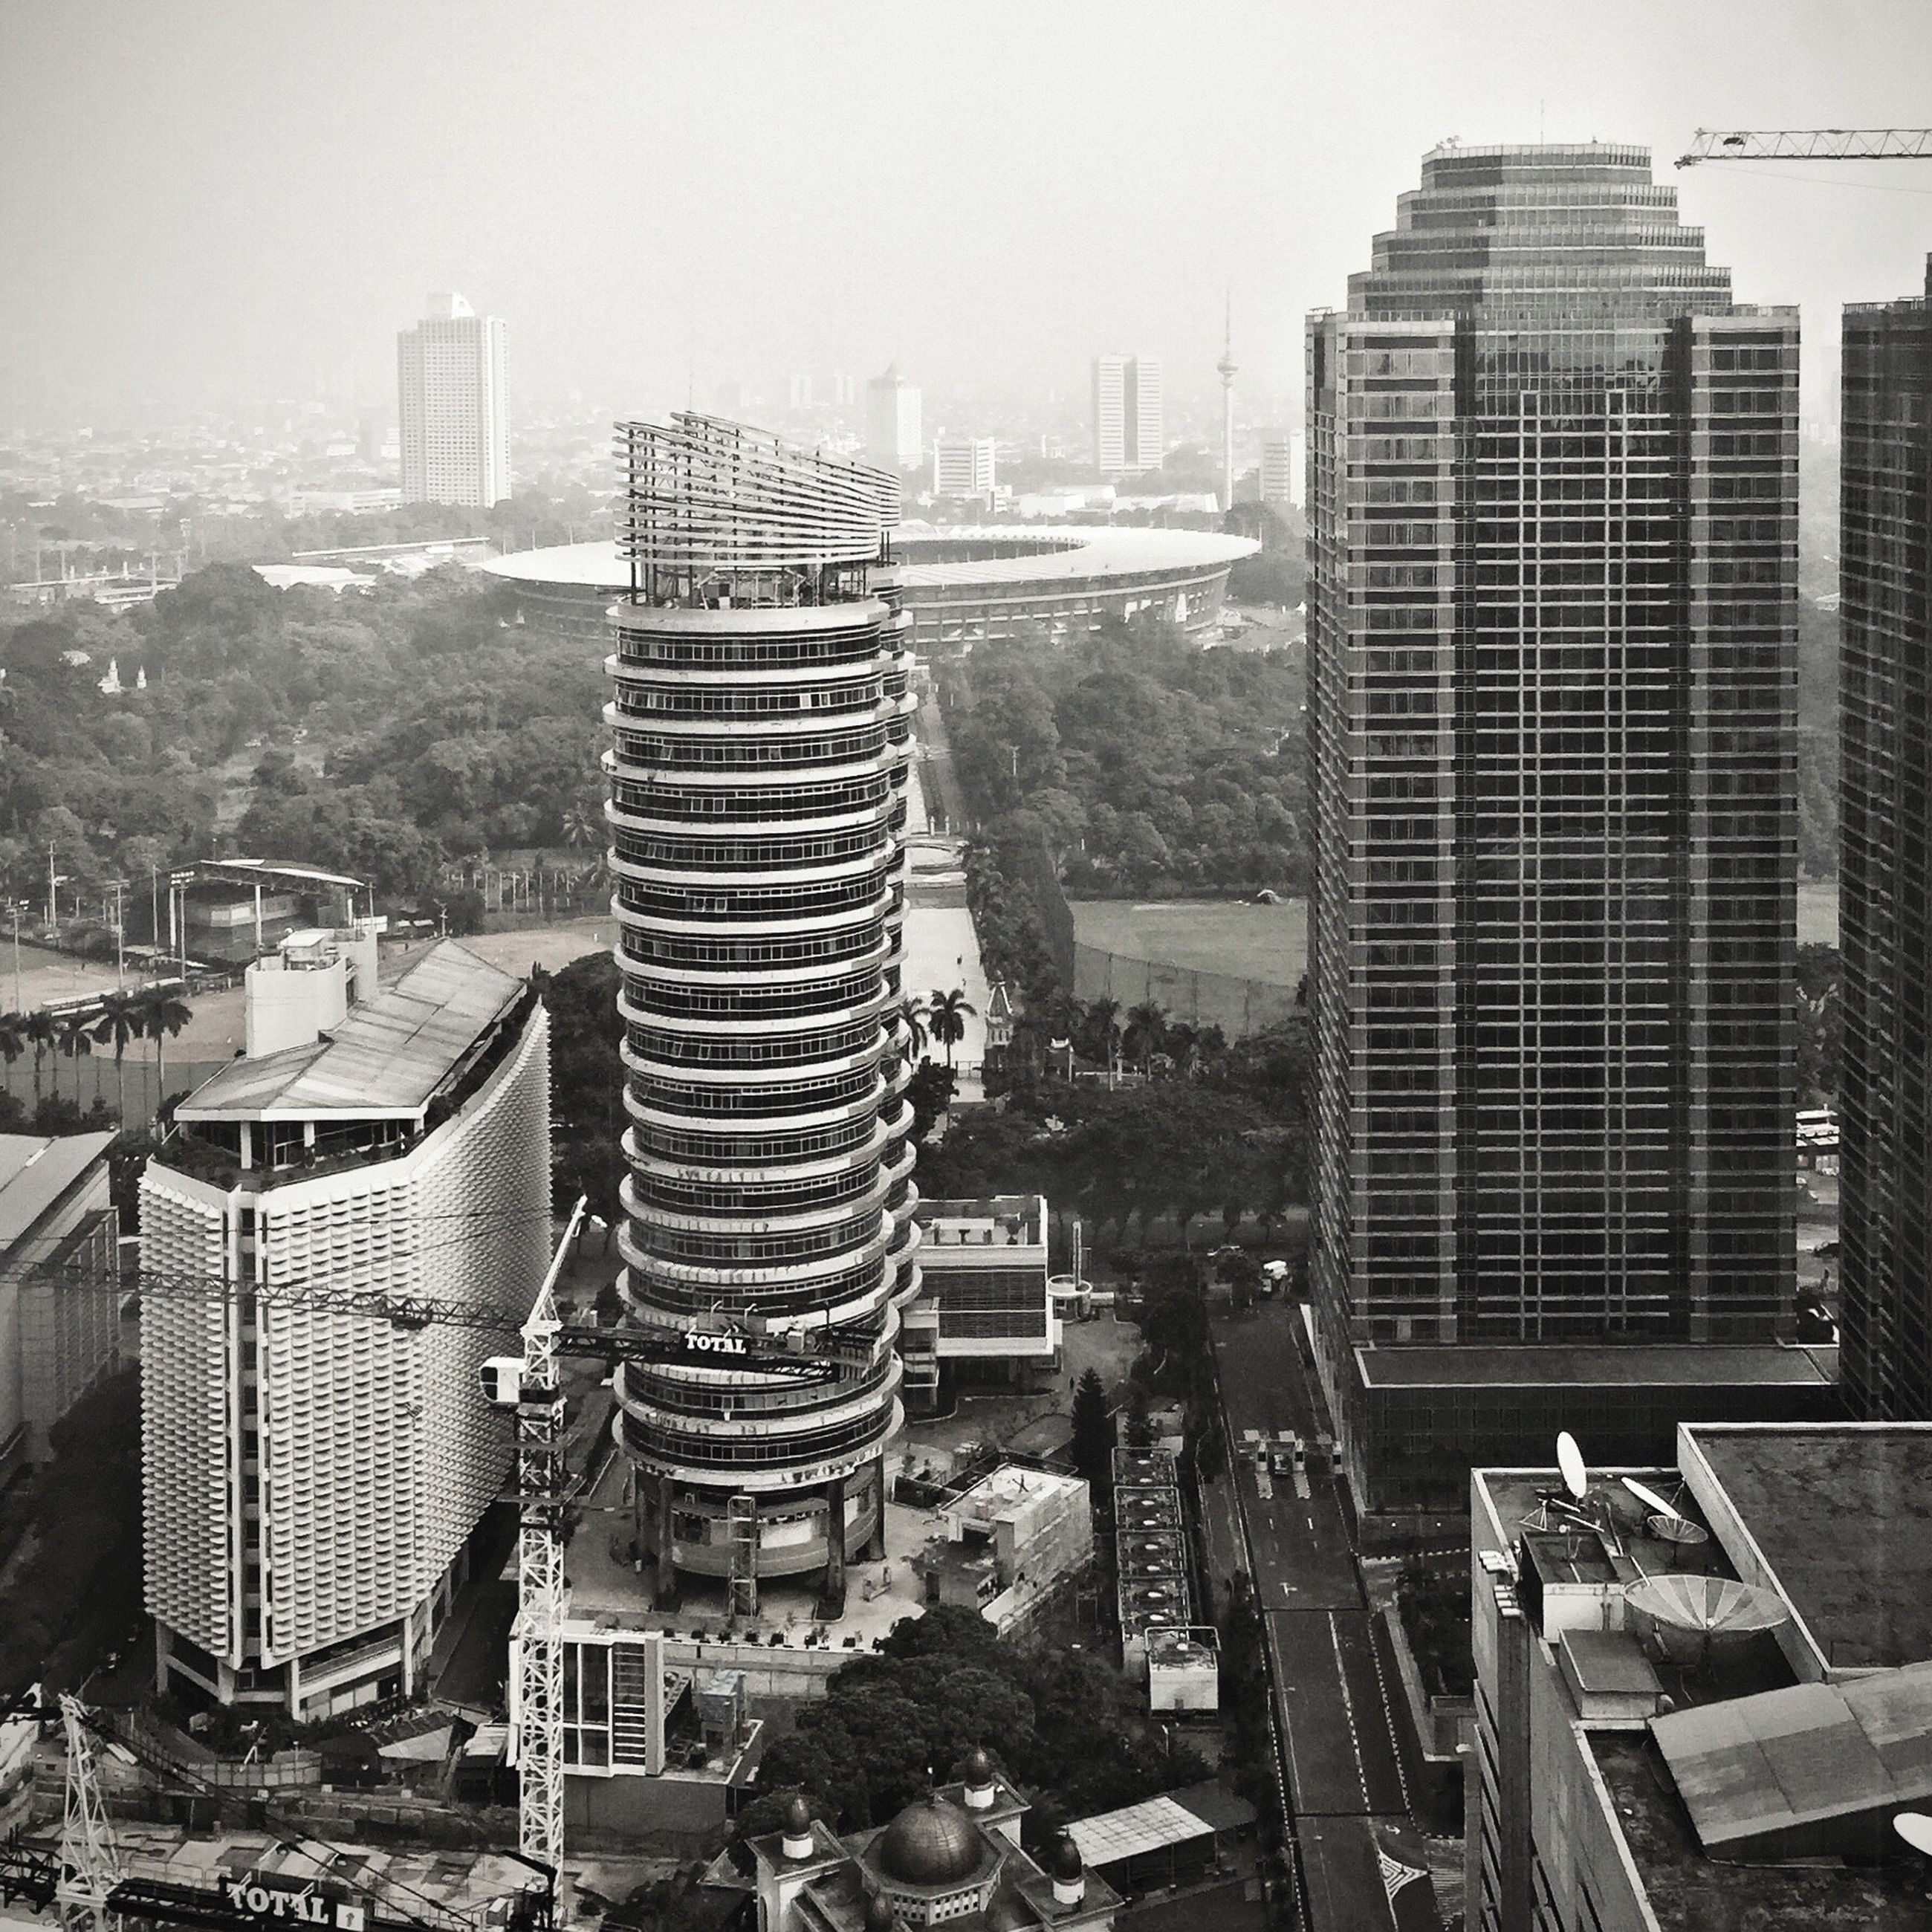 building exterior, city, architecture, built structure, cityscape, skyscraper, tall - high, modern, office building, crowded, tower, residential building, high angle view, urban skyline, residential district, building, city life, development, sky, outdoors